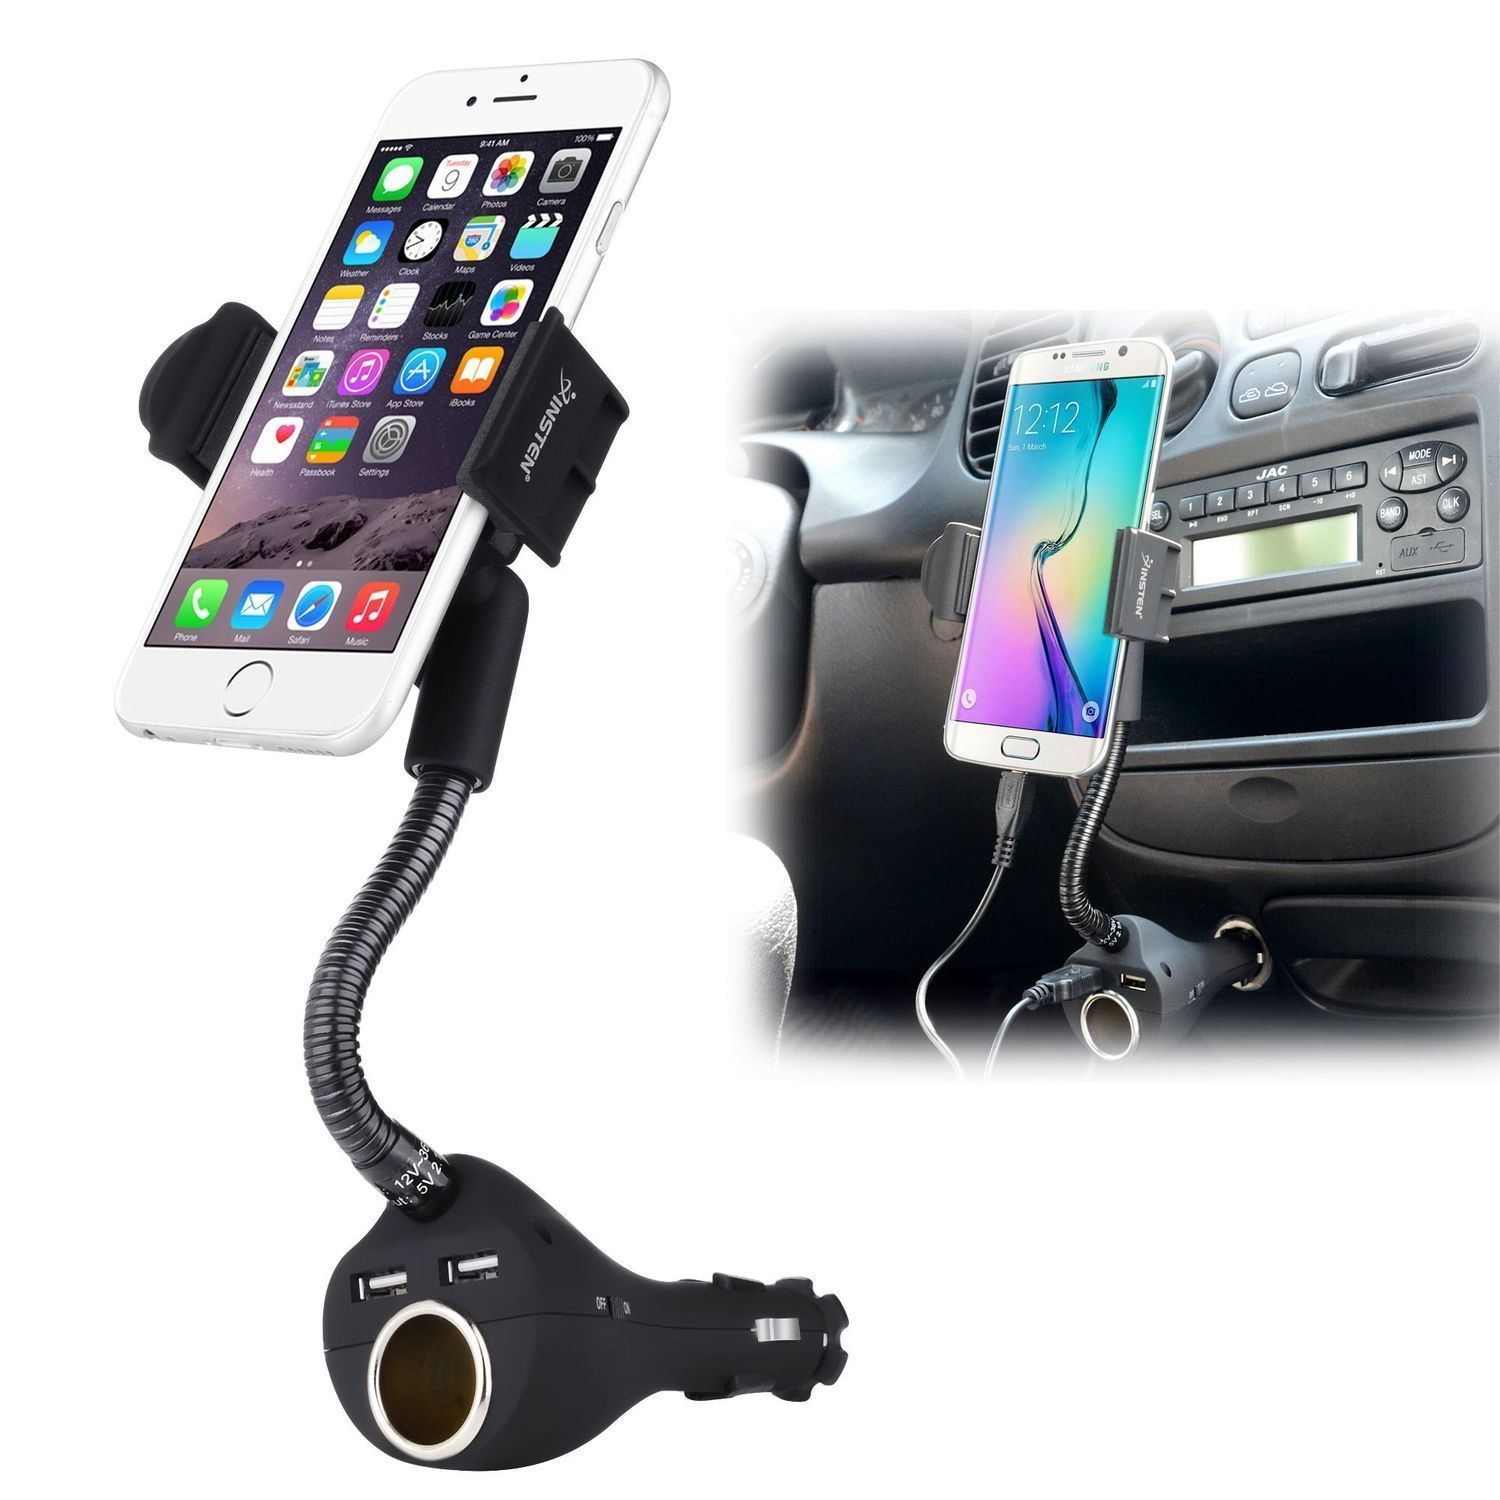 Insten universal car mount phone holder usb charger socket for iphone galaxy edge phones width up to inches black